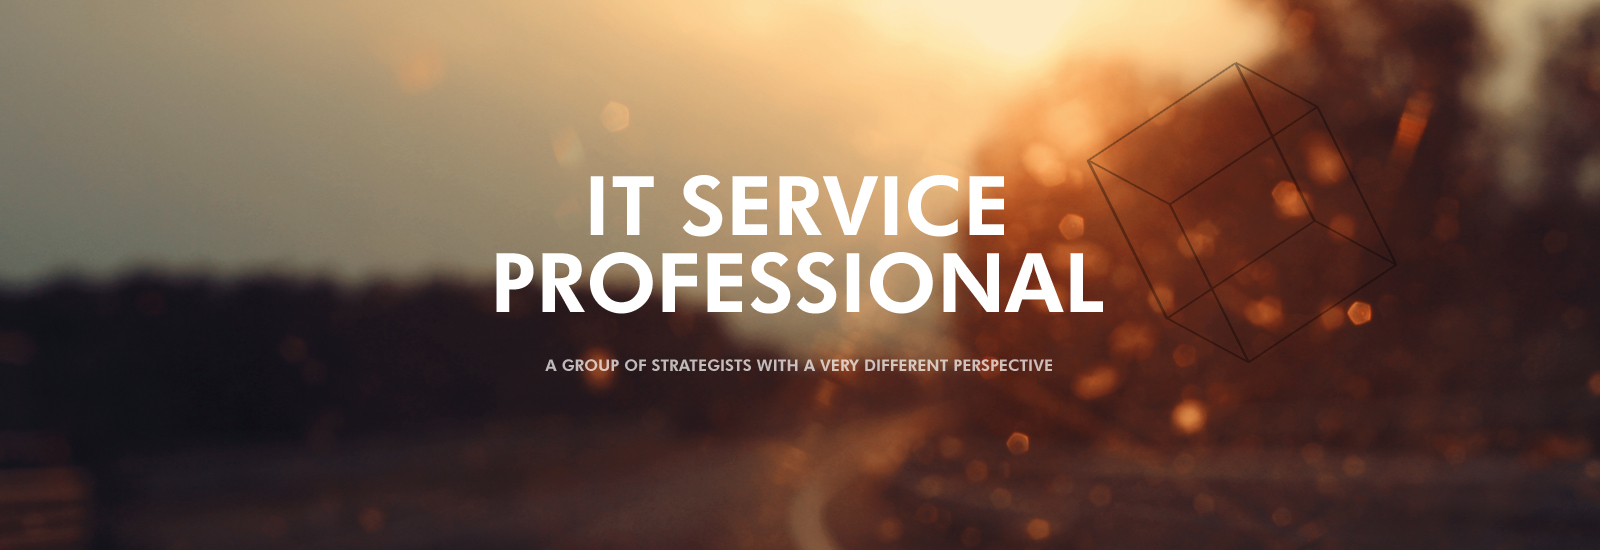 IT service professional a group of strategists with a very different perspective